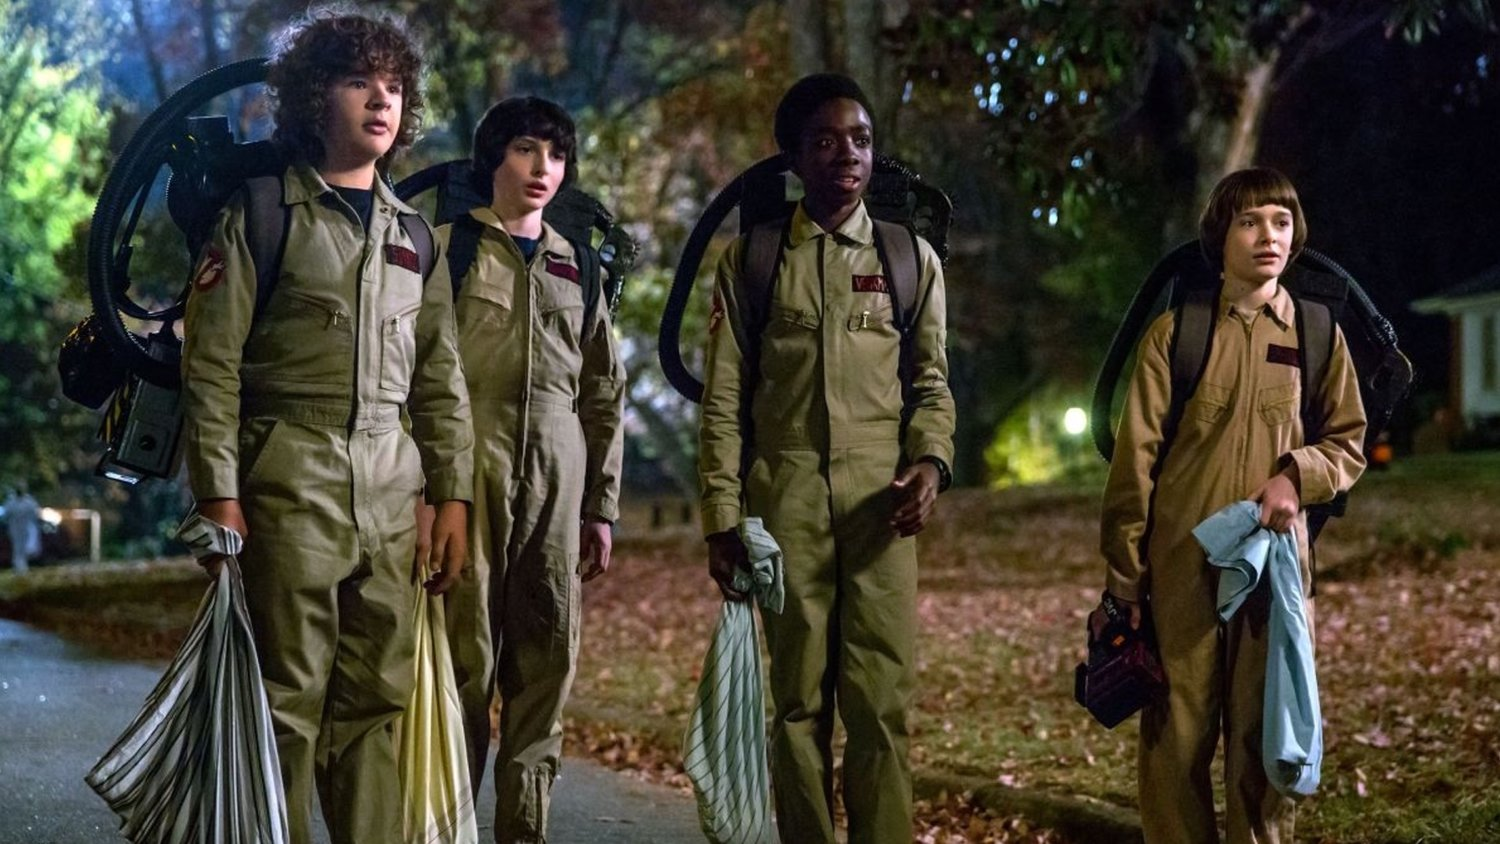 STRANGER THINGS Season 2 Upped Their Security Levels to GAME OF THRONES Standards